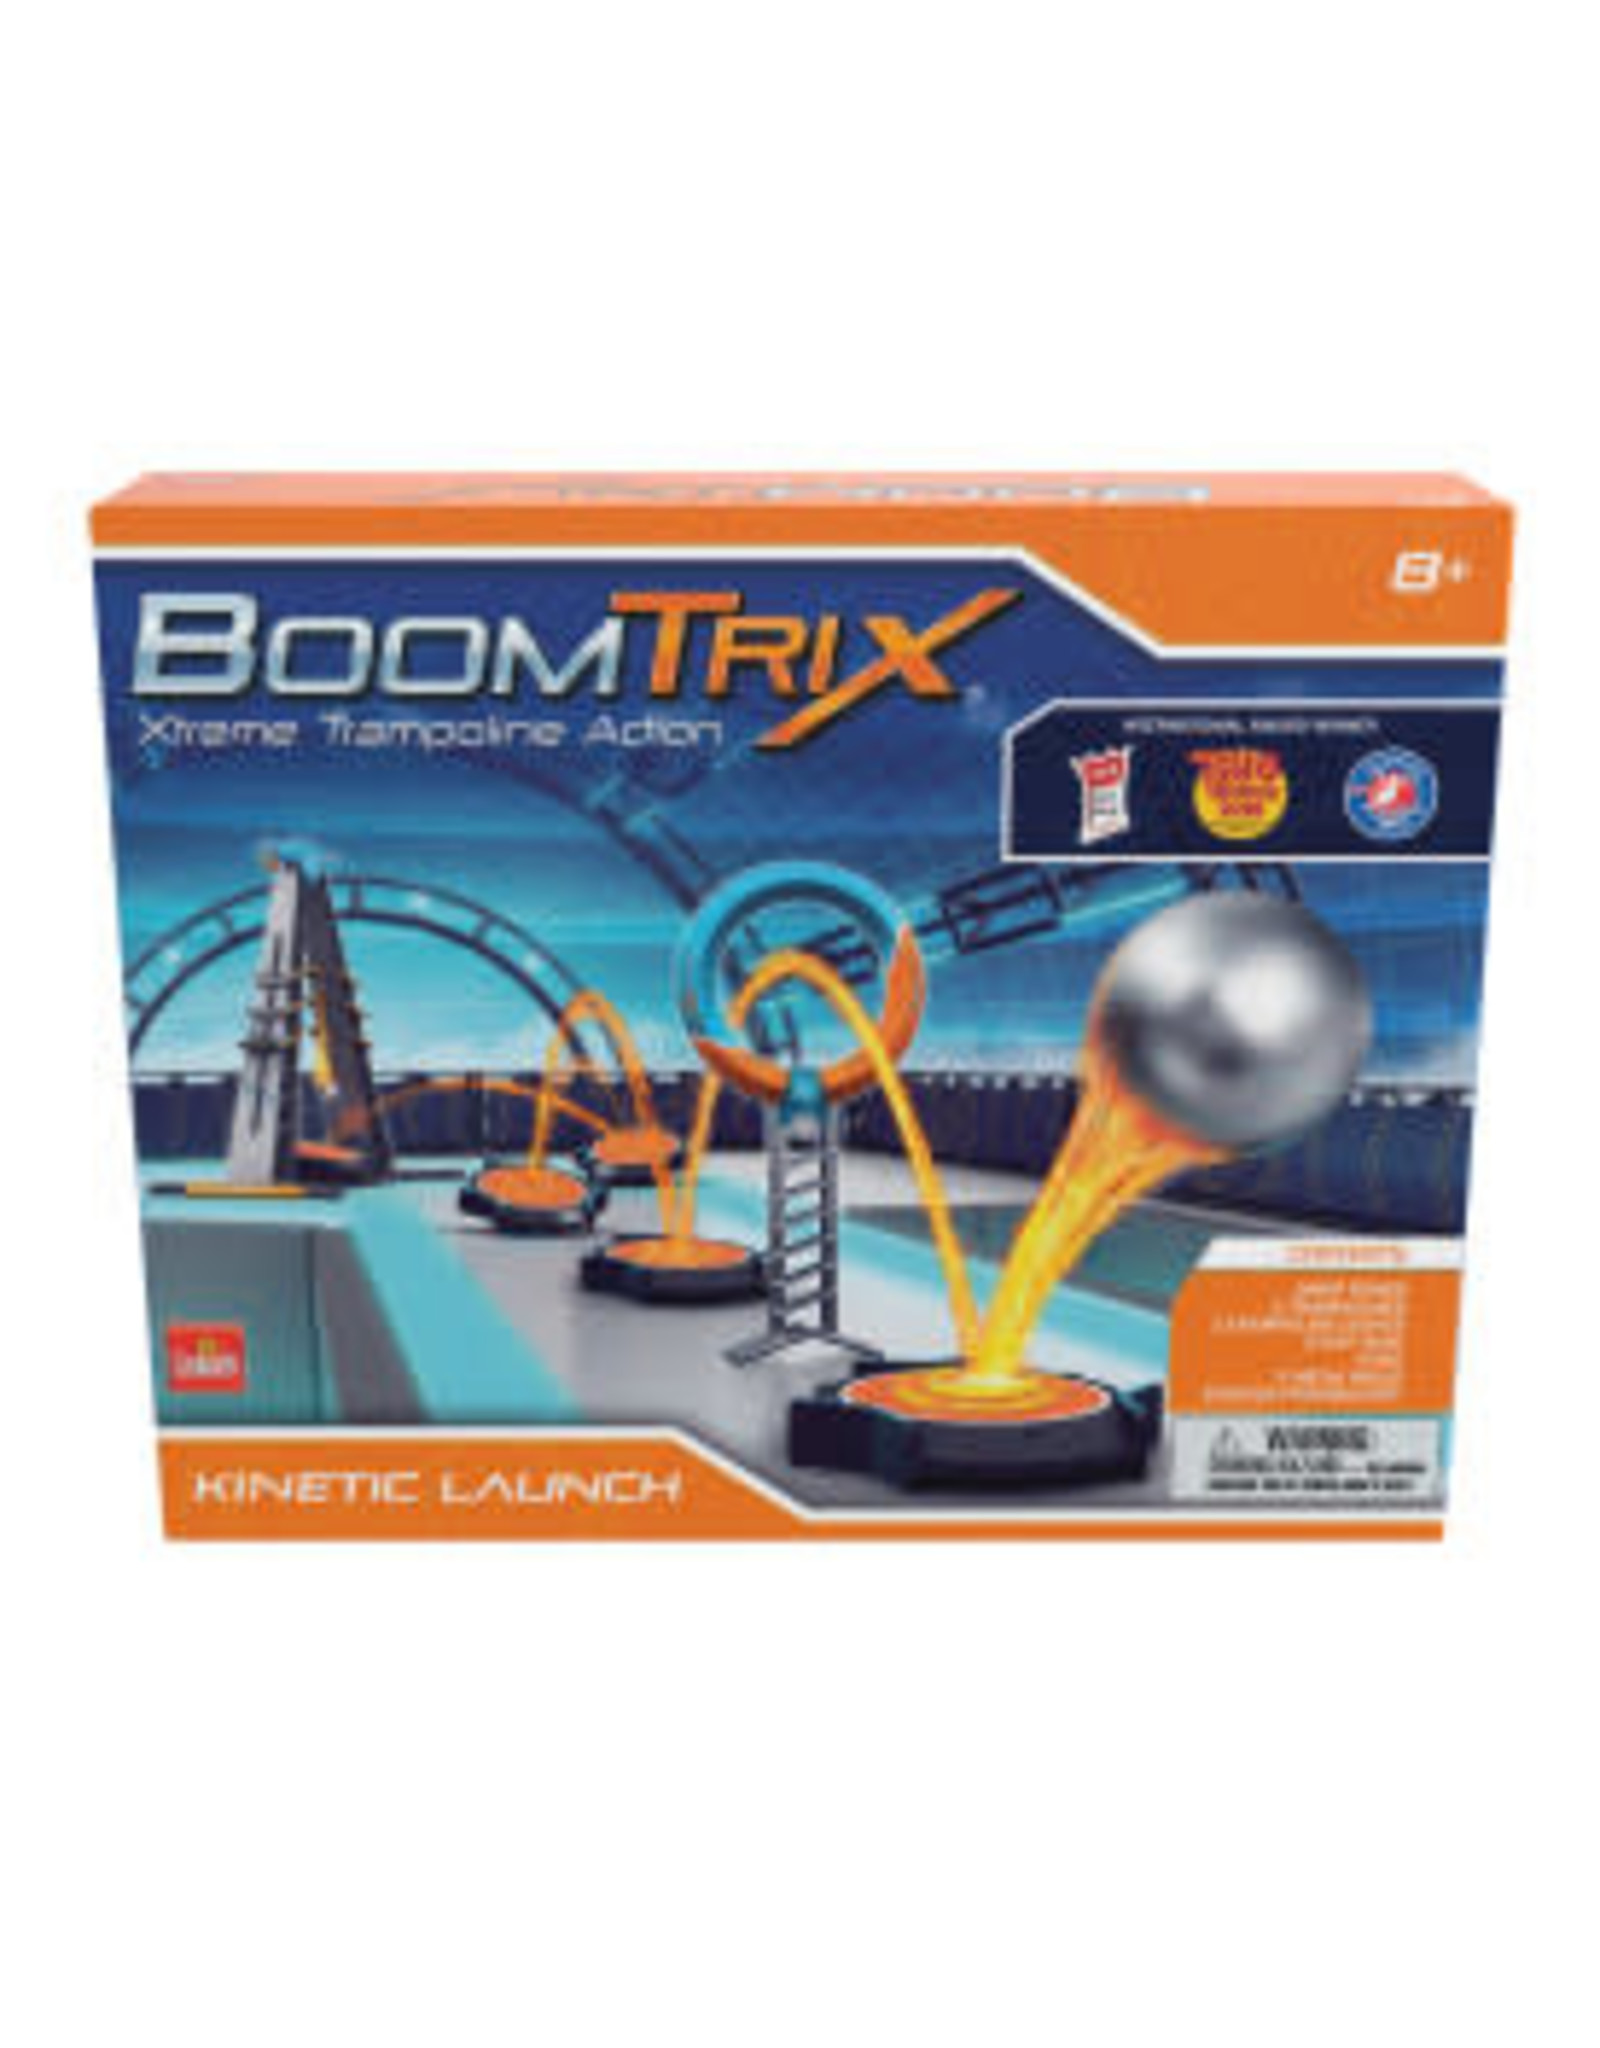 Goliath/Pressman BOOMTRIX® KINETIC LAUNCH